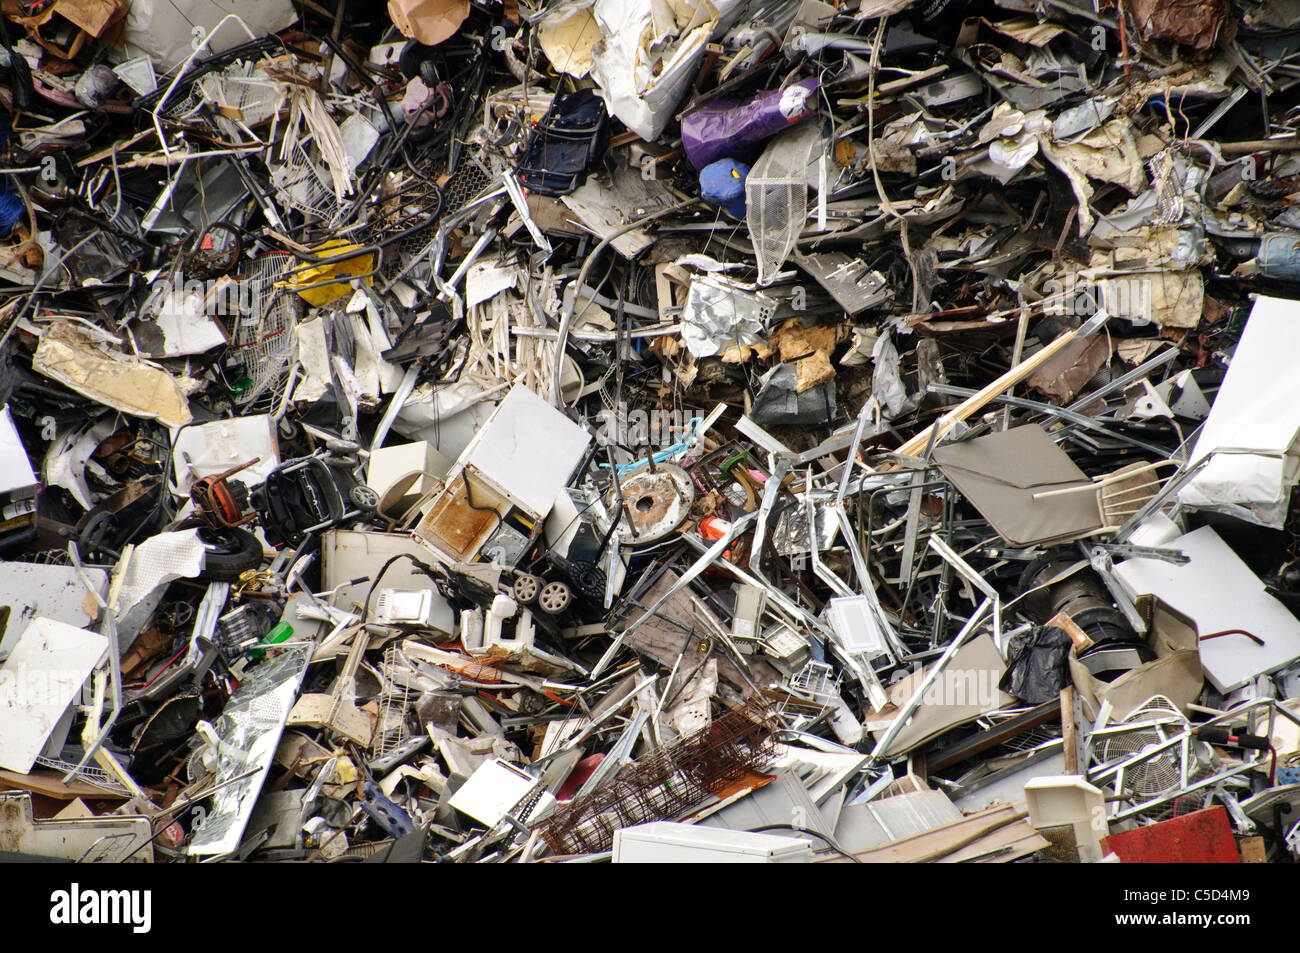 Scrap Metal Junk Yard, Brooklyn, New York City - Stock Image